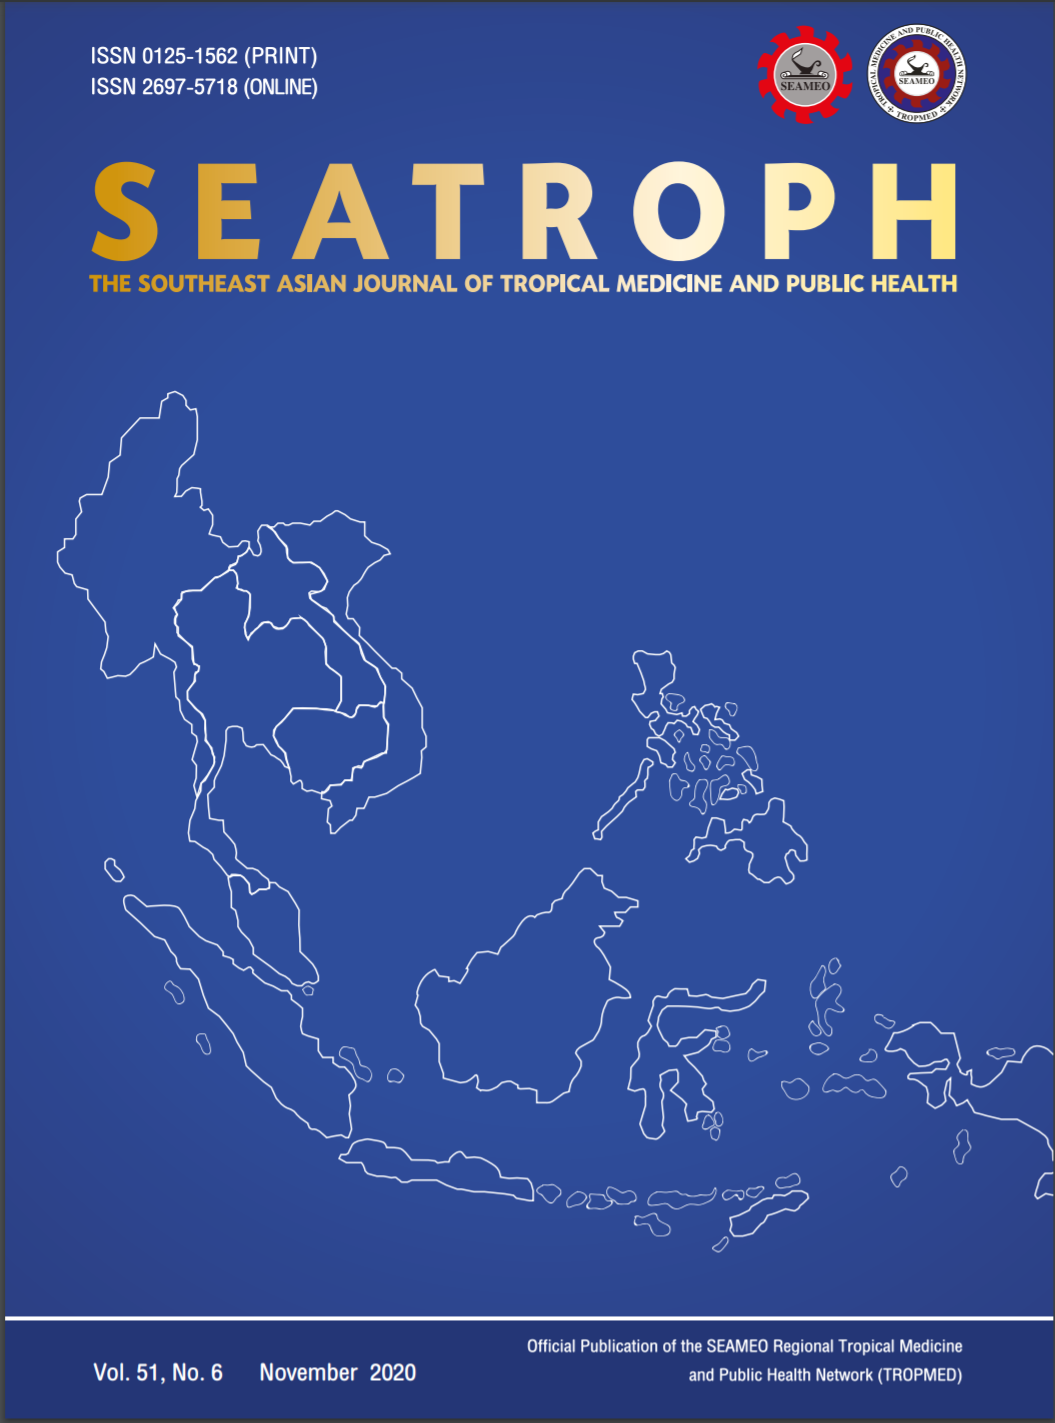 View Vol. 51 No. 6 (2020): THE SOUTHEAST ASIAN JOURNAL OF TROPICAL MEDICINE AND PUBLIC HEALTH